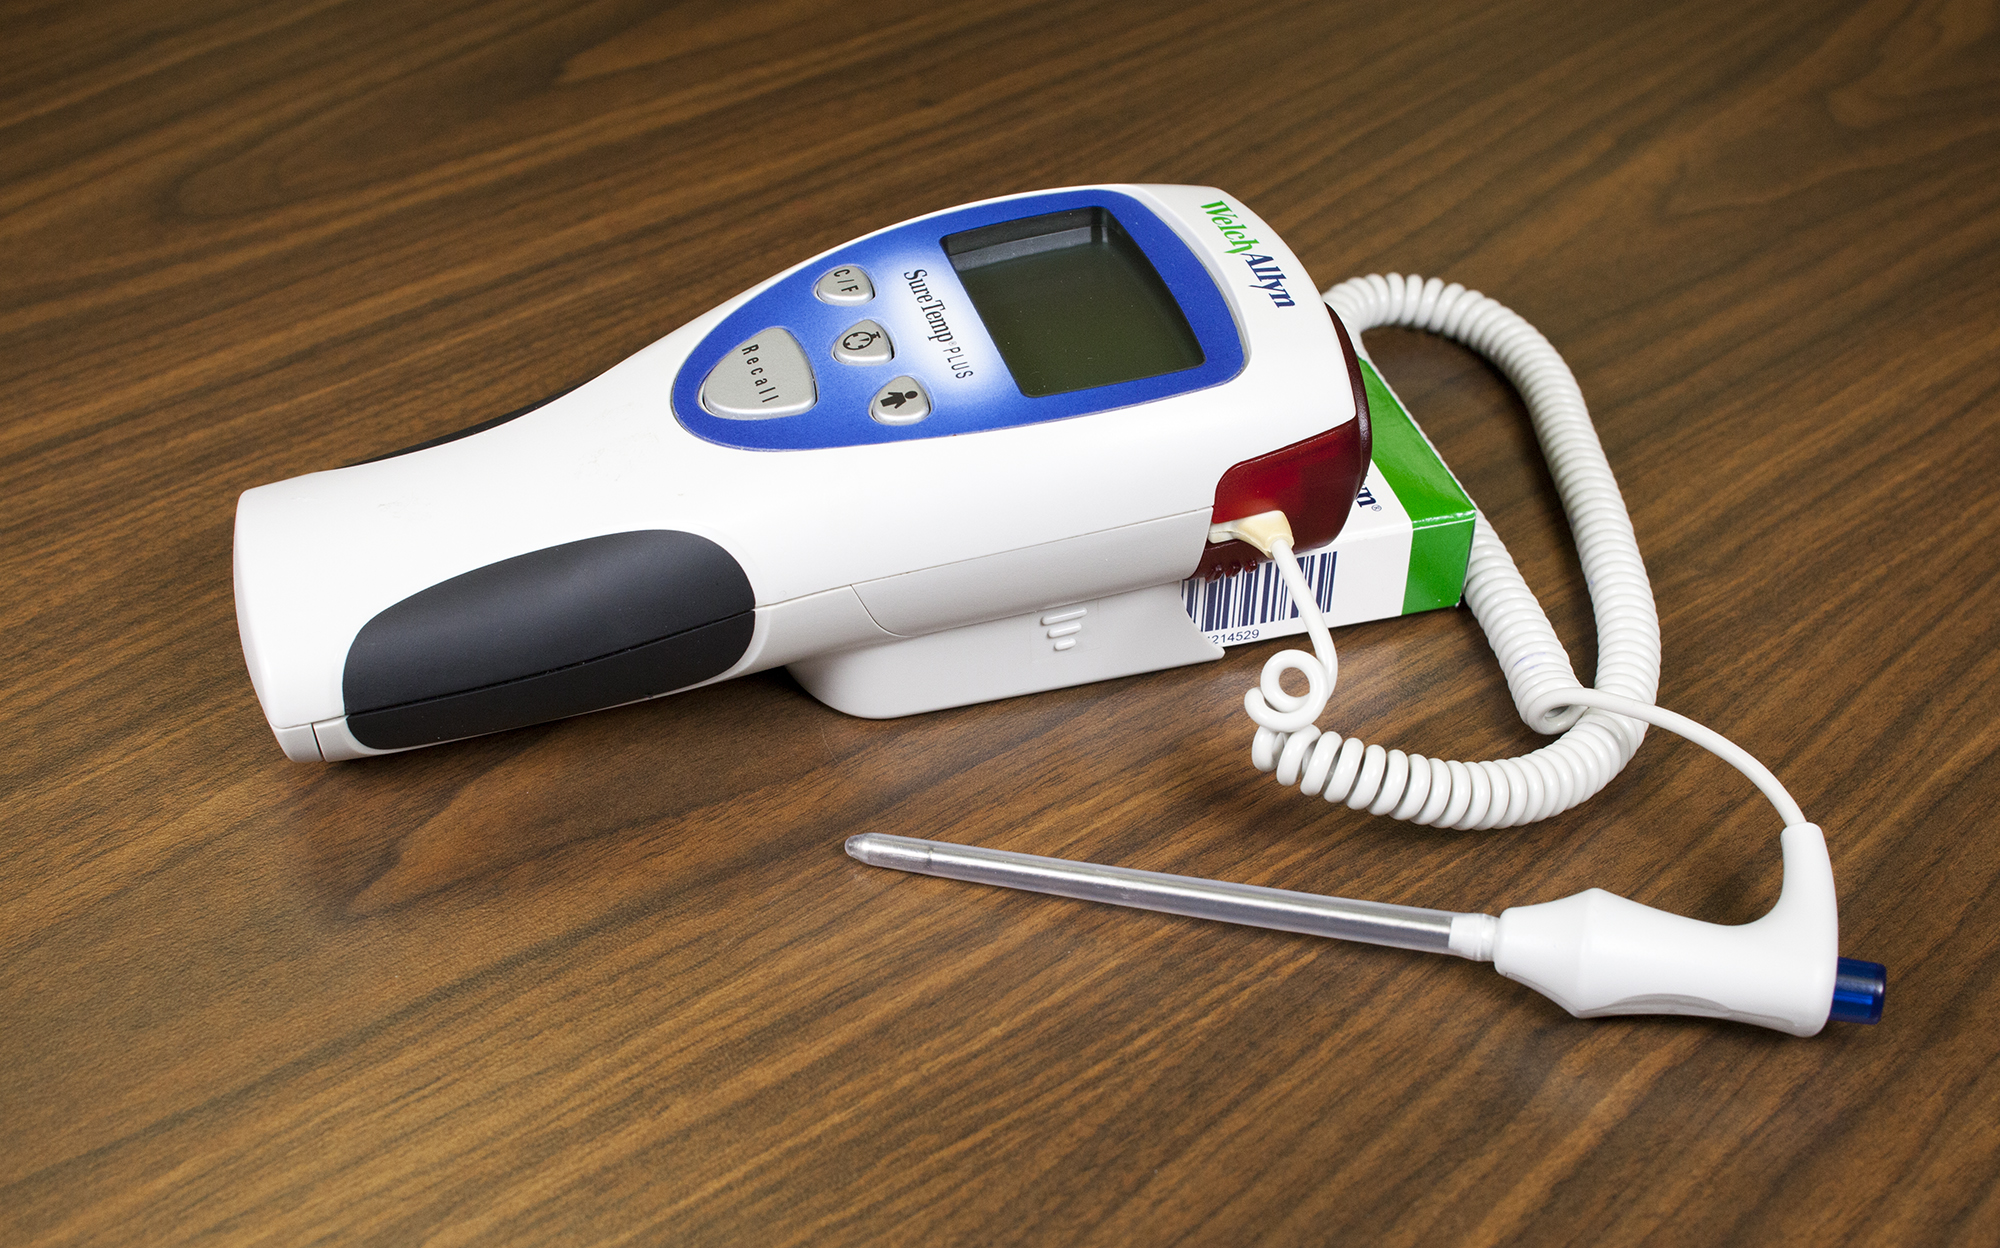 Rectal thermometer that shows the red end on the device with the probe cover on.